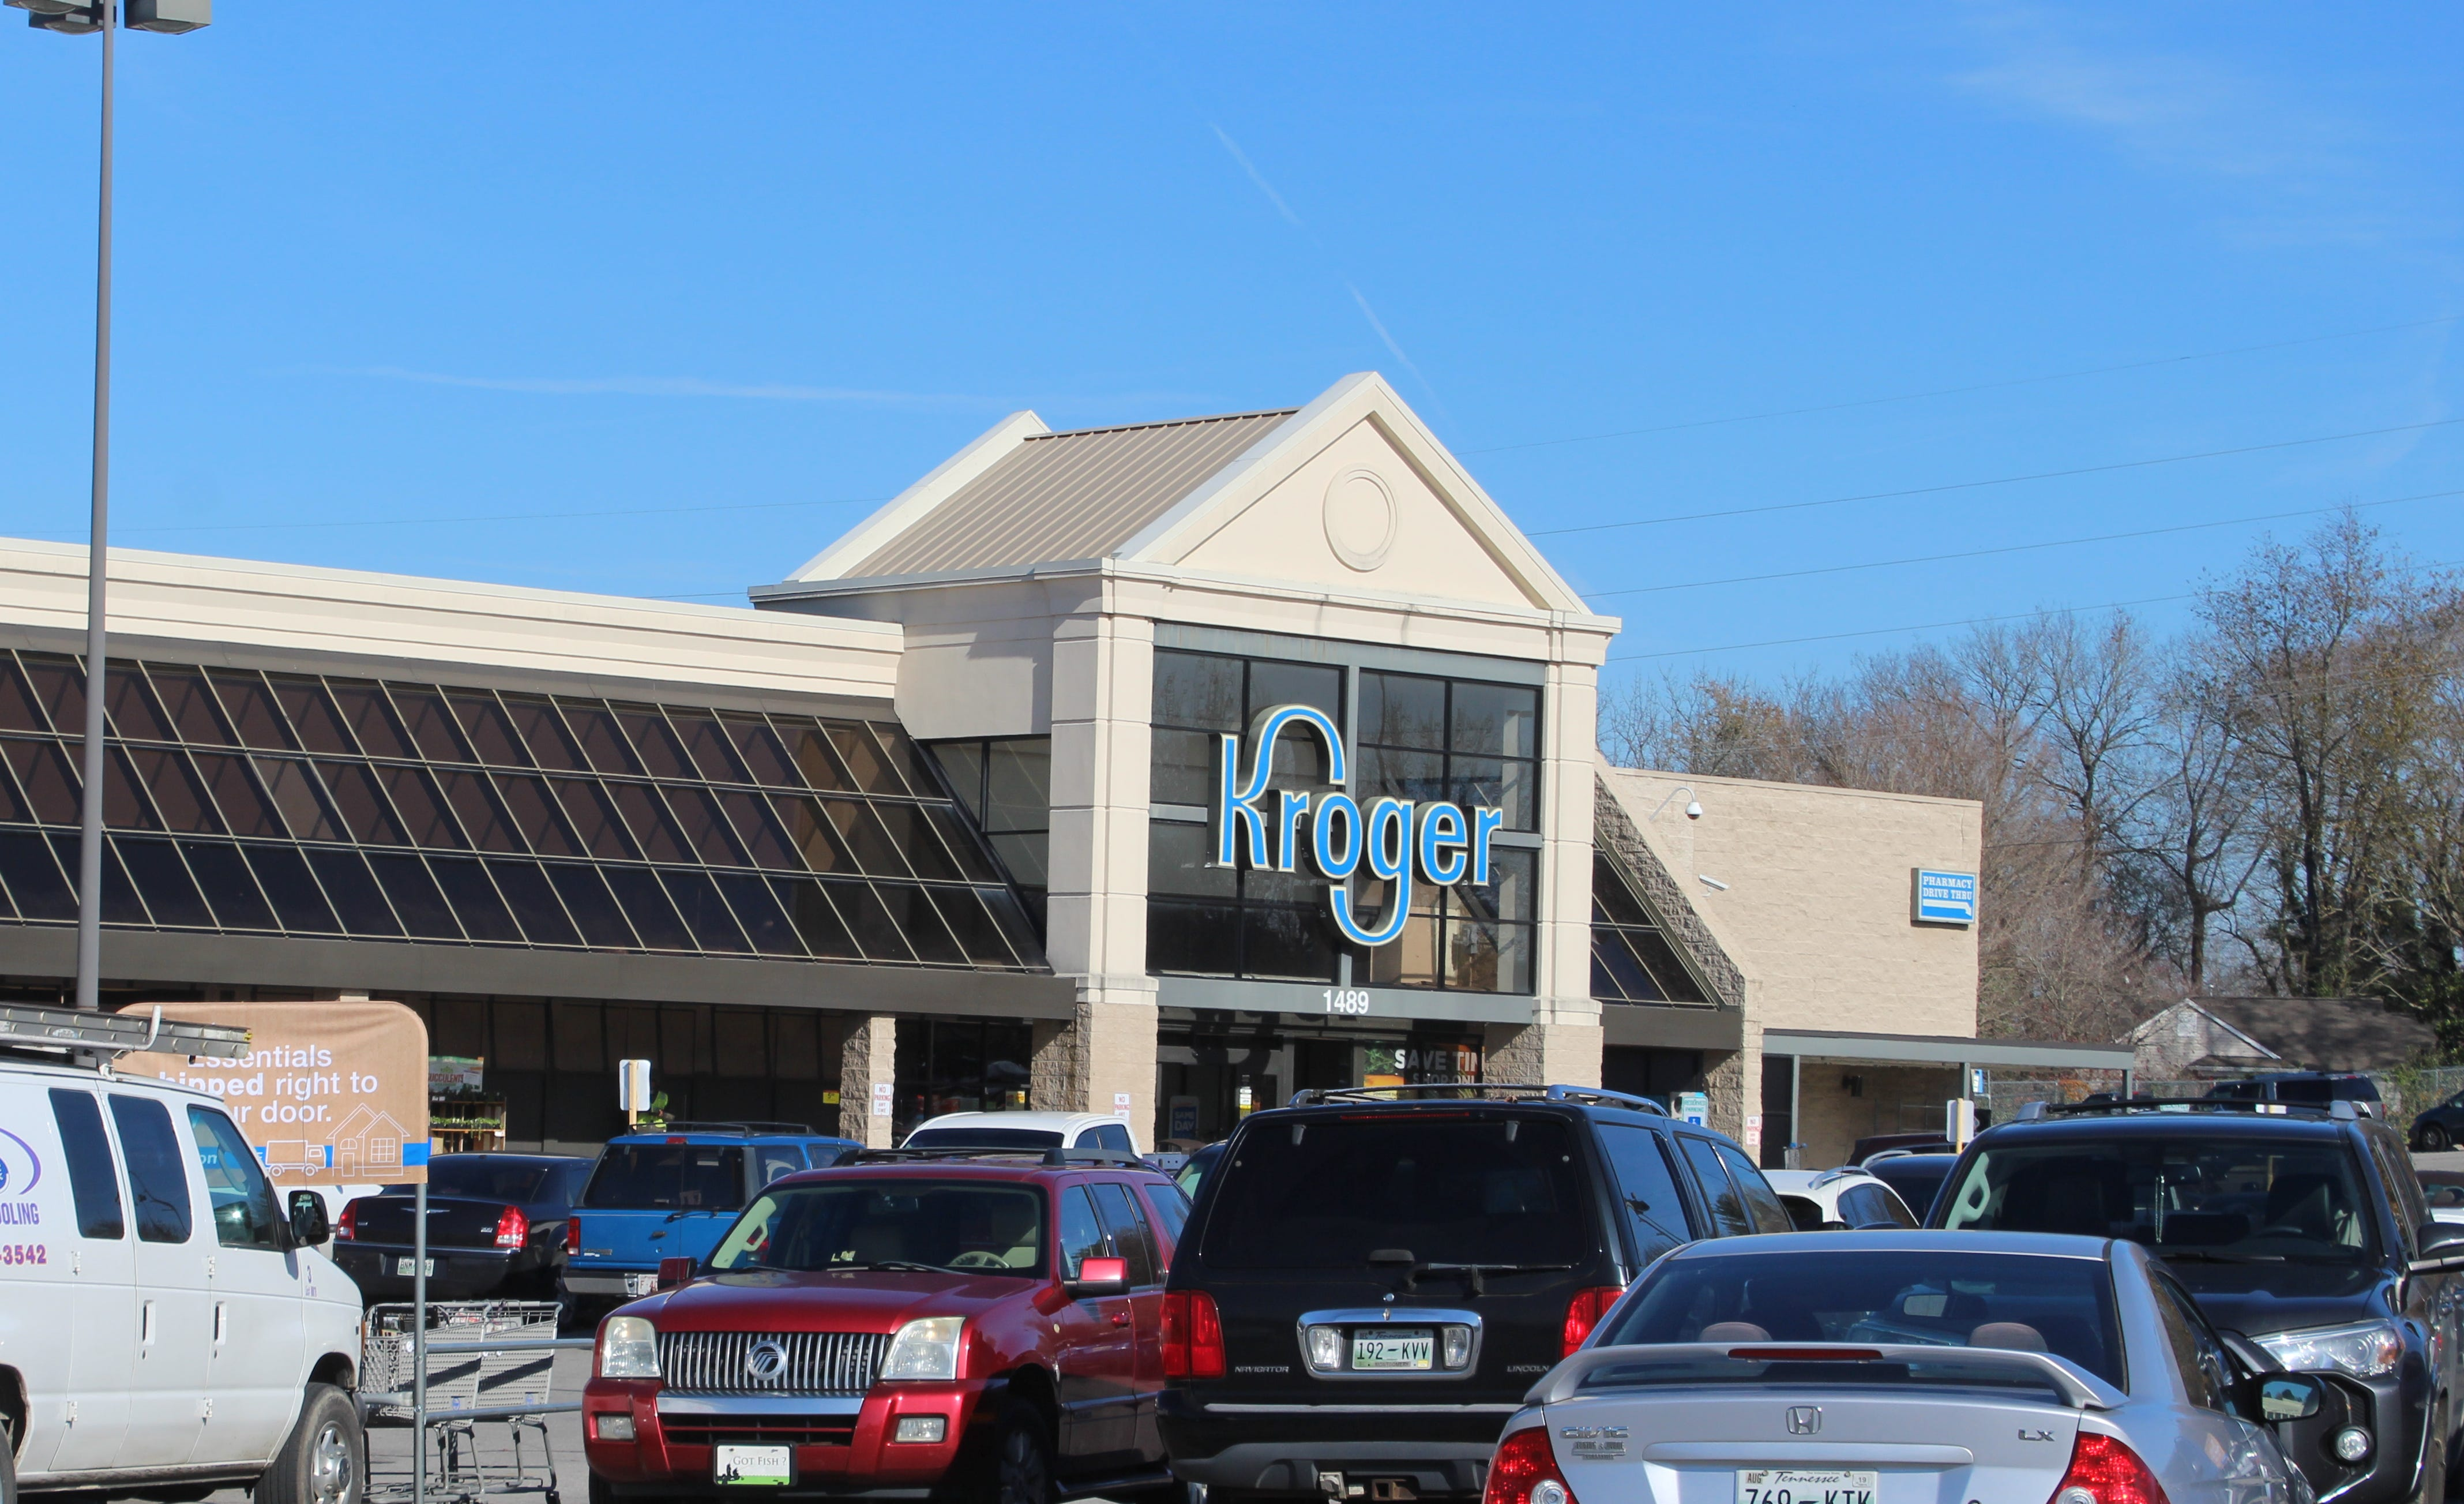 One of the nearest grocery stores to downtown, this Kroger sits on Madison Street, nearly 2 miles from APSU.